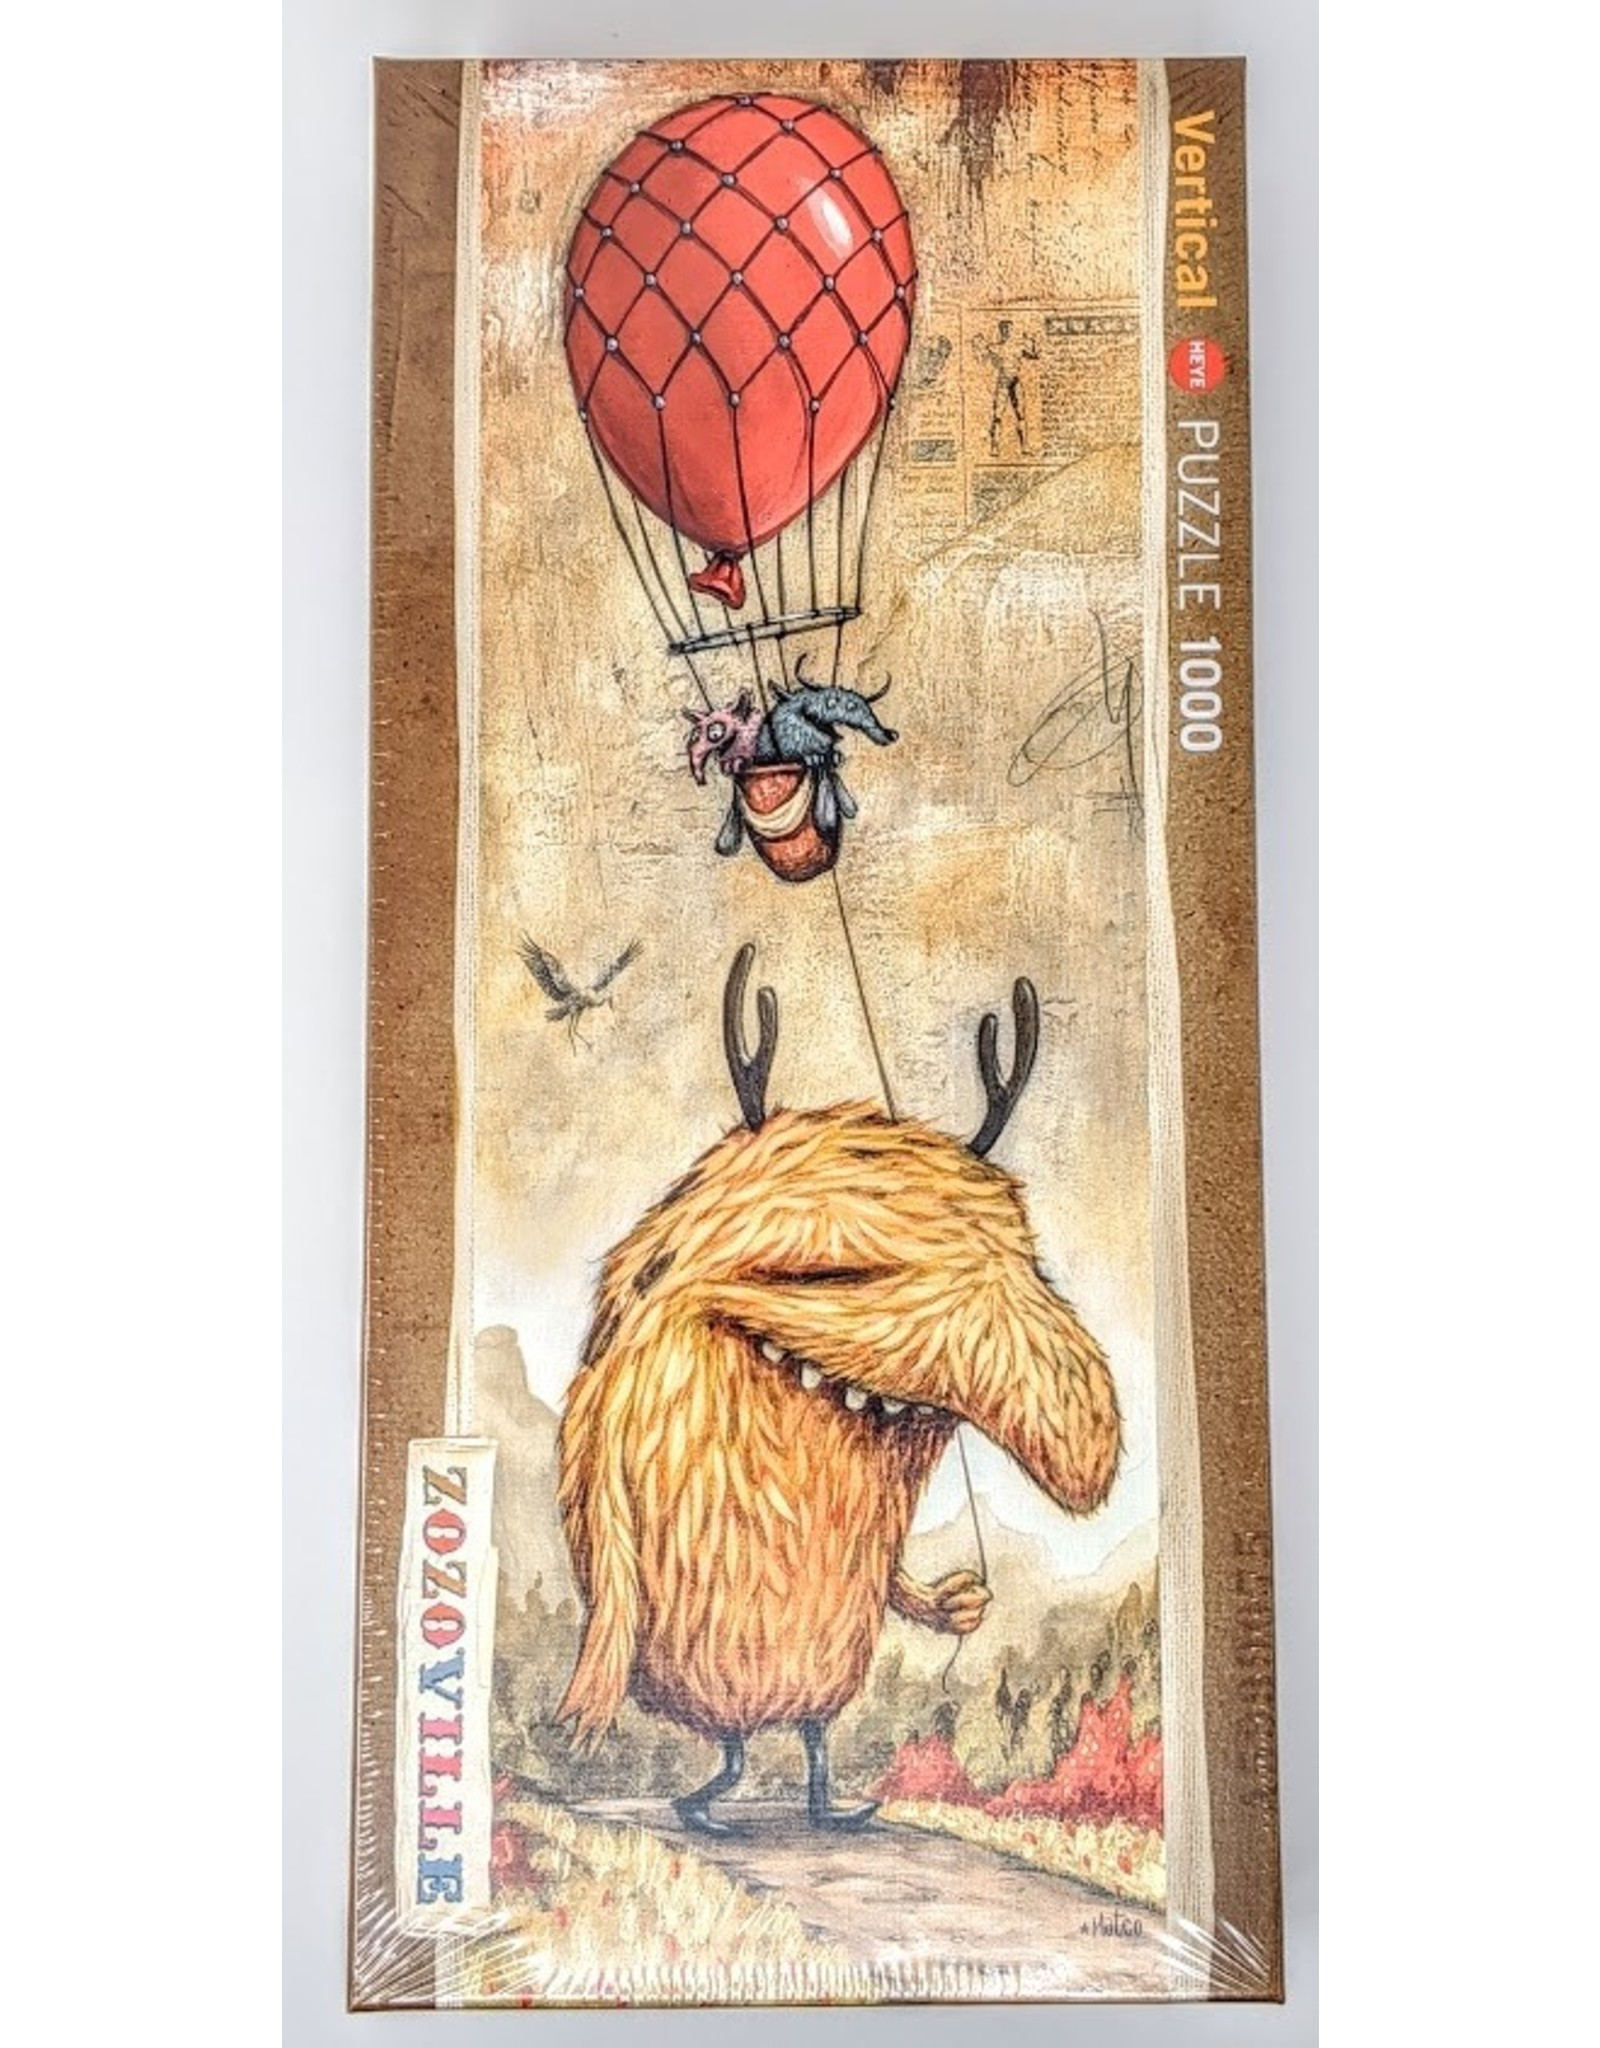 Zozoville Puzzle (1000 piece) - red balloon